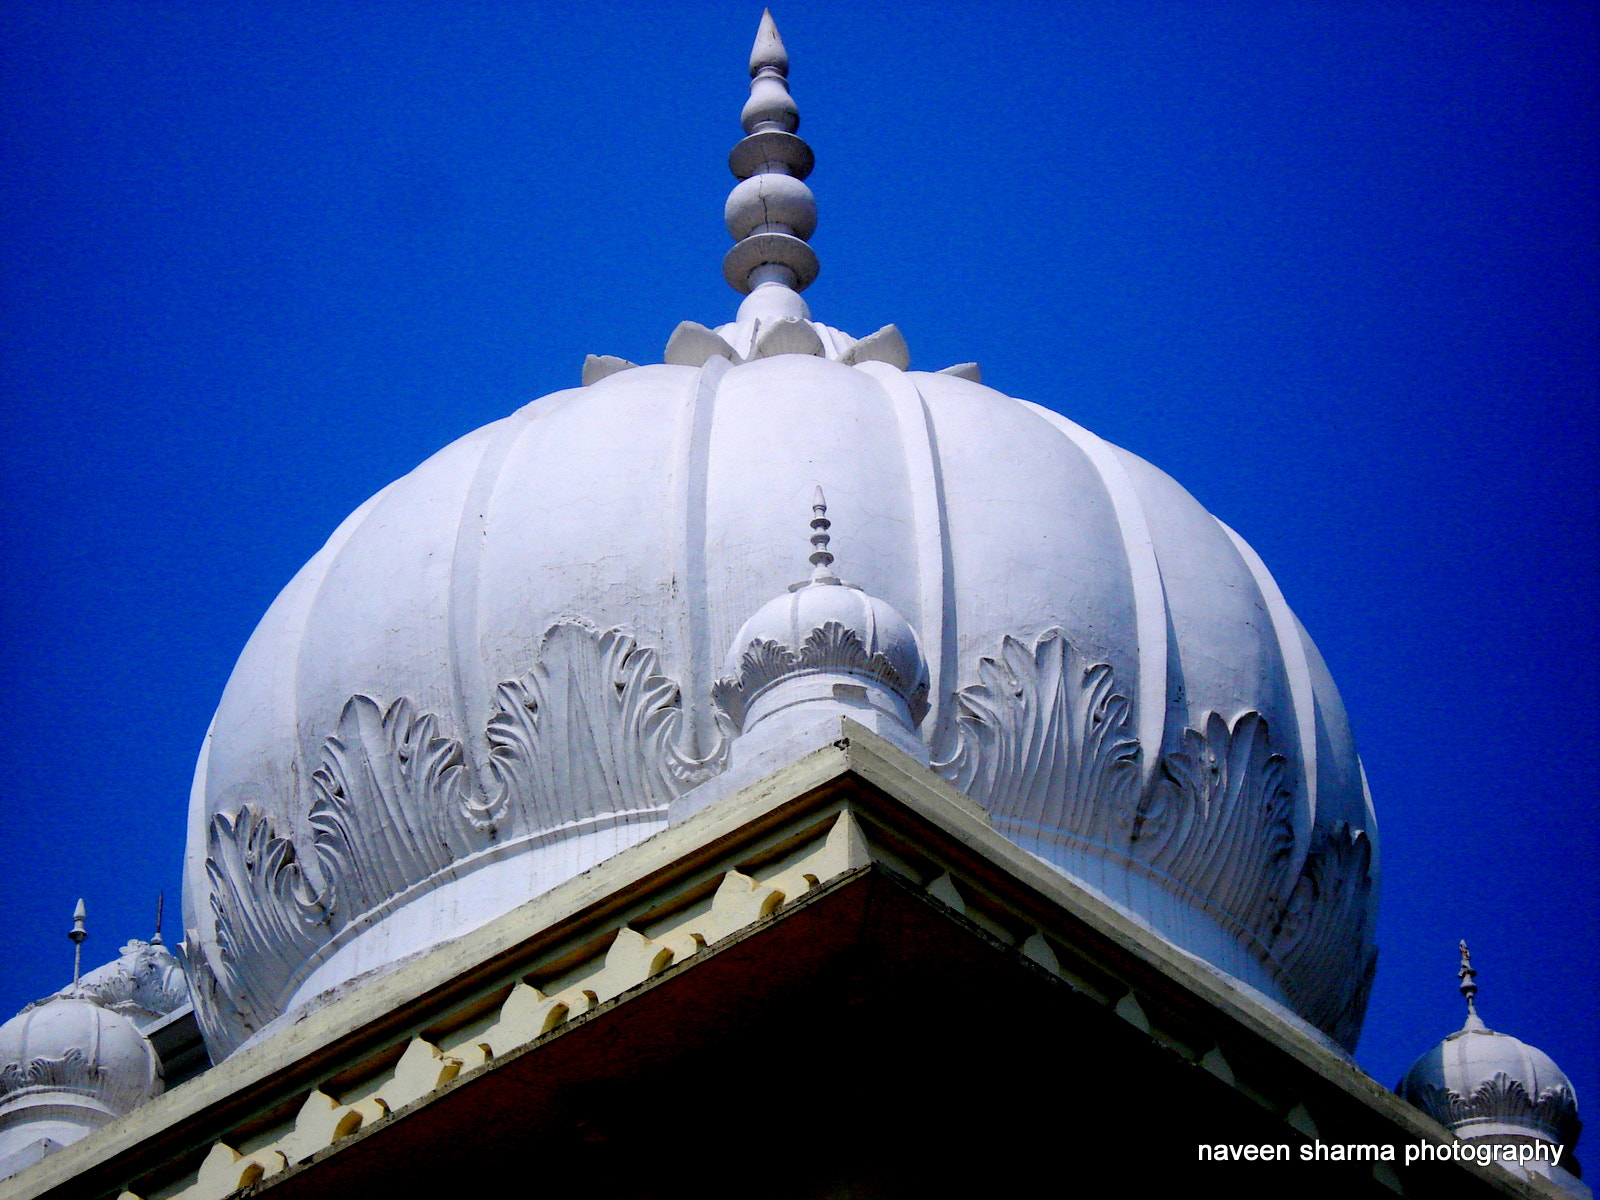 Photograph DOME ARCHITECTURE OF INDIA by naveen sharma on 500px